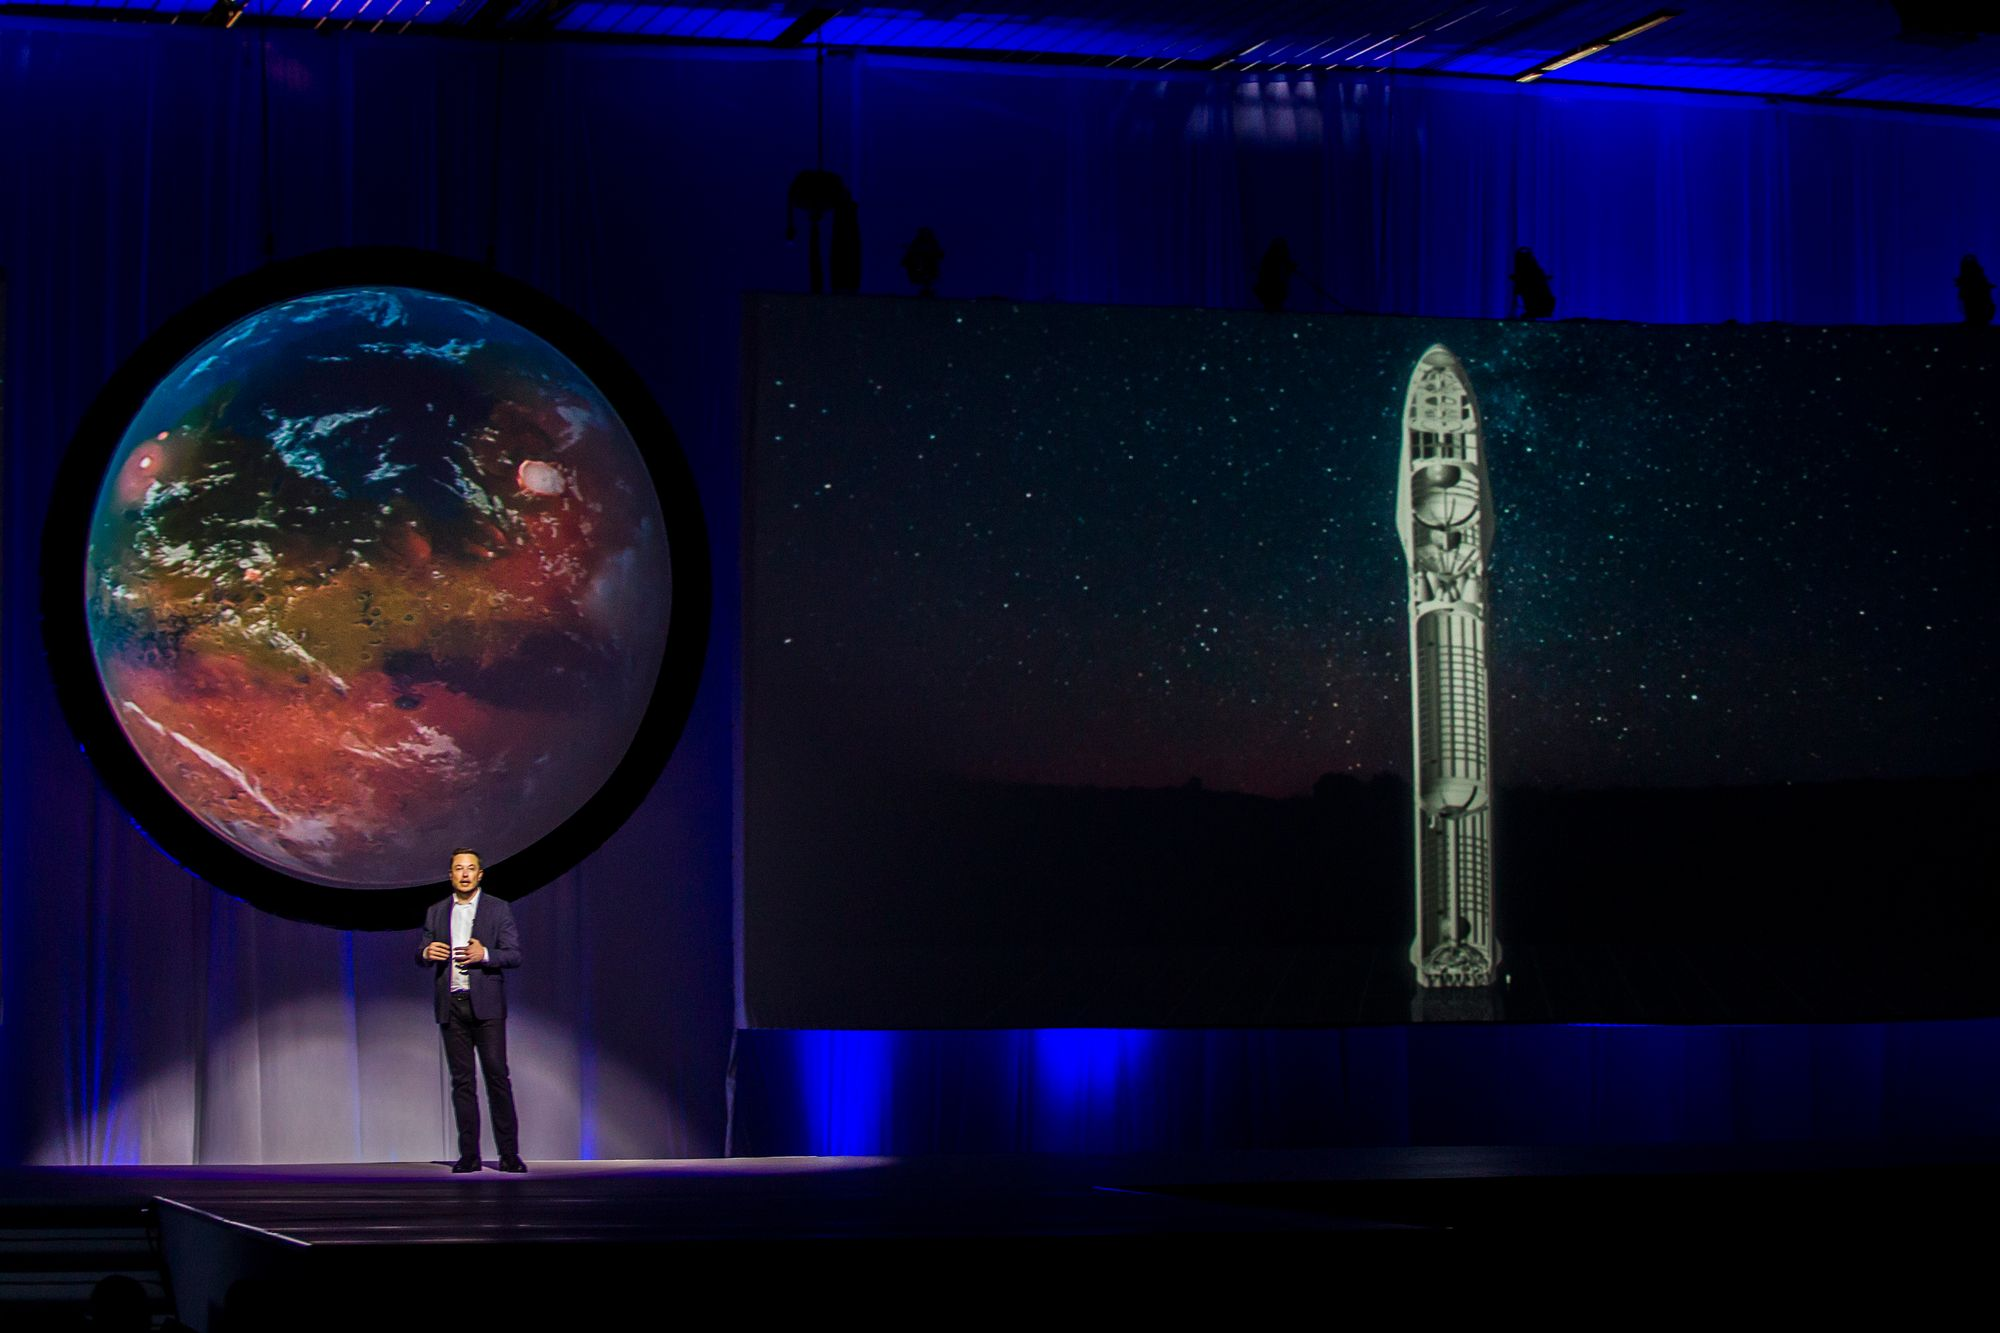 Elon Musk lors du congrès international d'astronautique de Guadalajara, au Mexique, en septembre 2016.